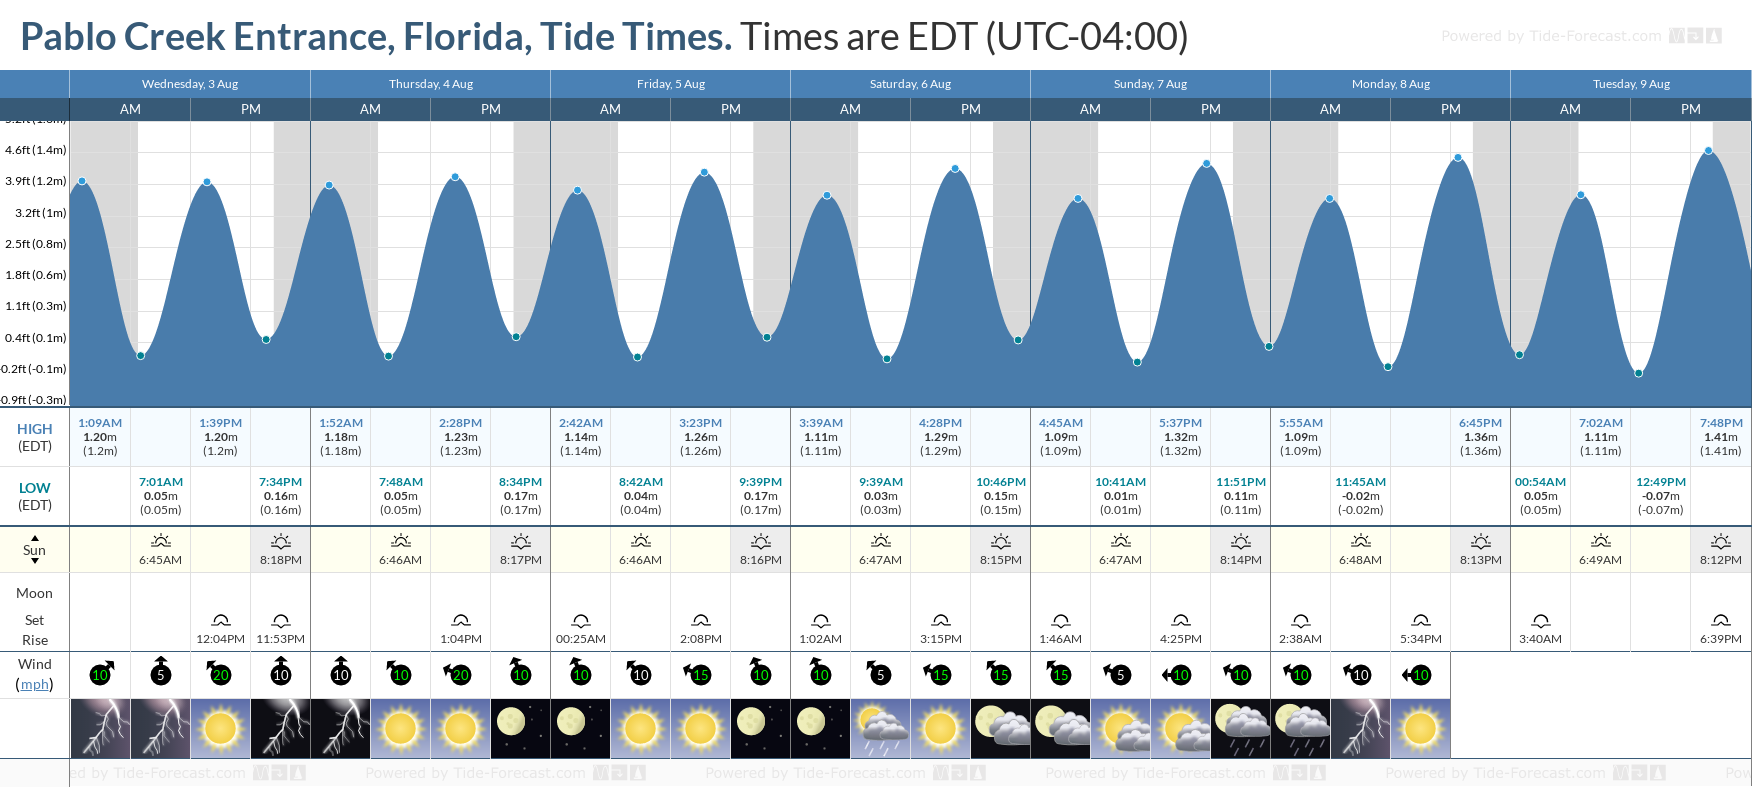 Pablo Creek Entrance, Florida Tide Chart including high and low tide tide times for the next 7 days